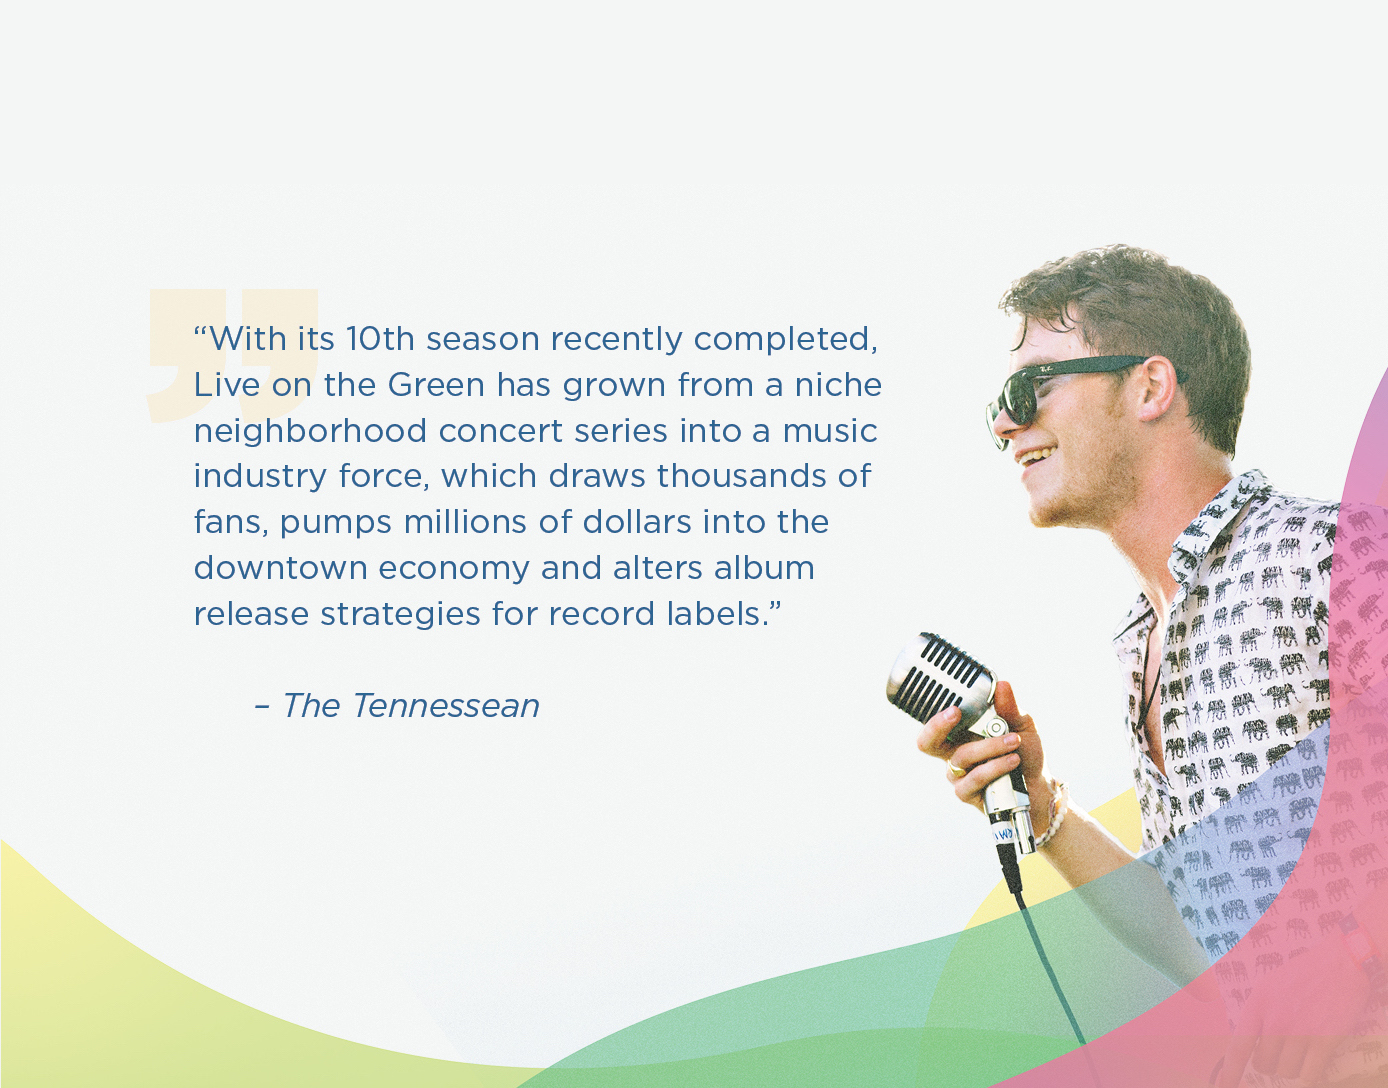 With its 10th season recently completed, Live On The Green has grown from a niche neighborhood concert series into a music industry force, which draws thousands of fans, pumps millions of dollars into the downtown economy and alters album release strategies for record labels. – The Tennessean